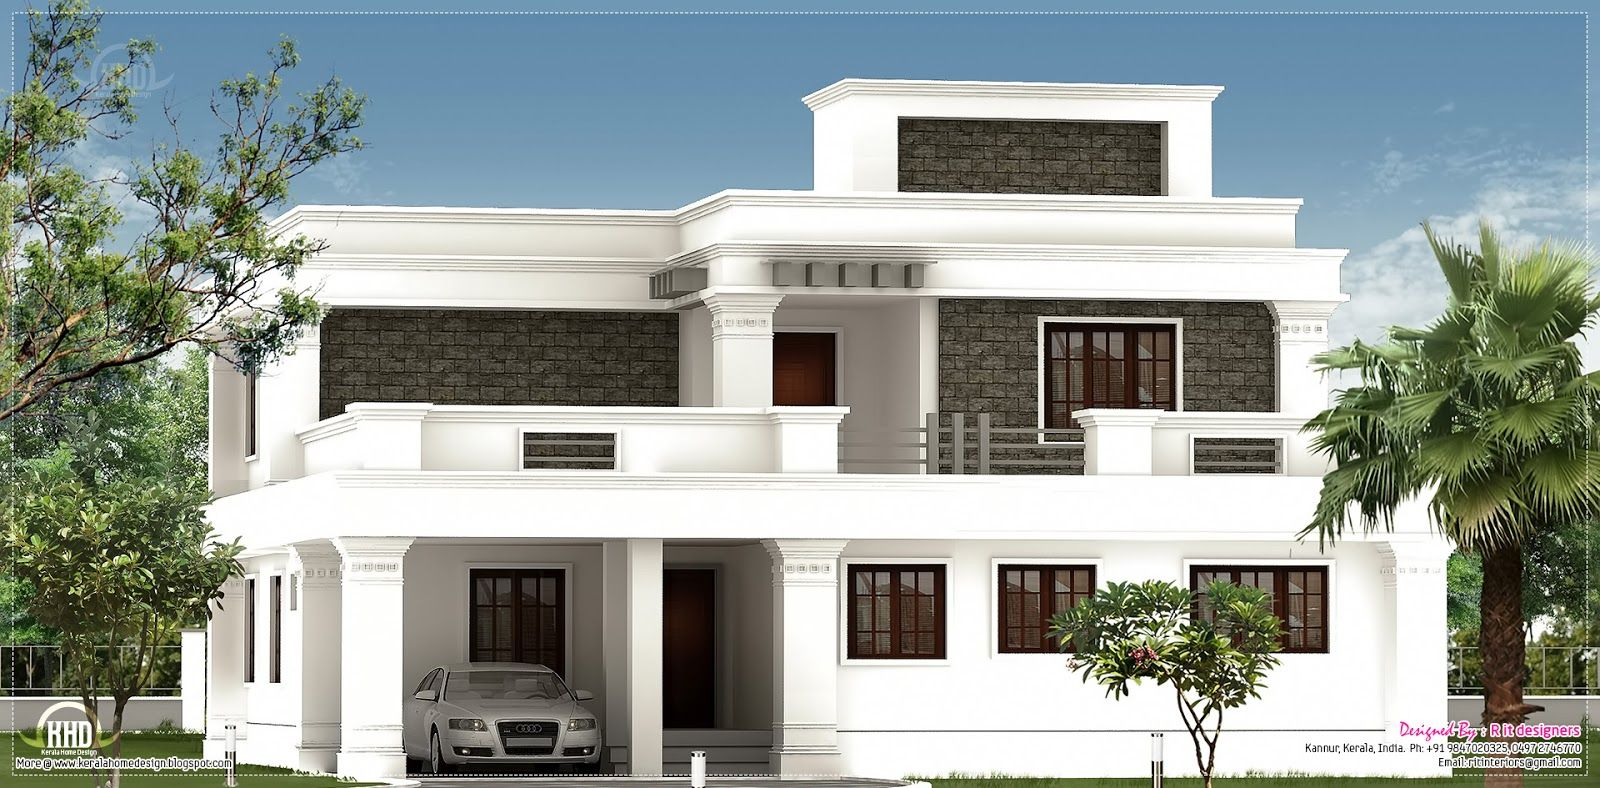 Flat roof homes designs flat roof villa exterior in 2400 for Best house designs 2013